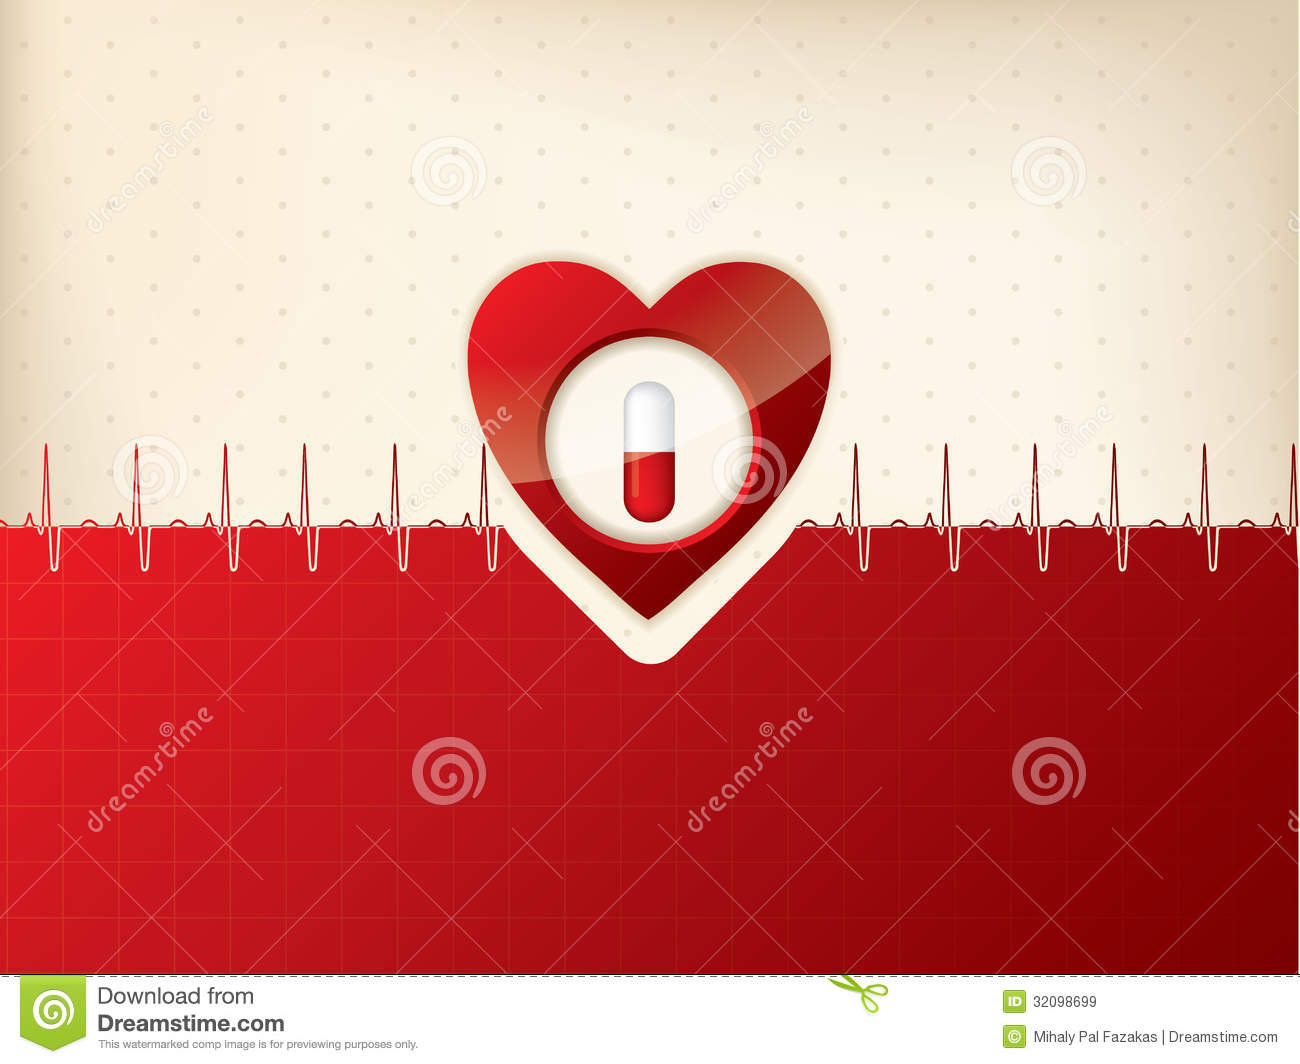 Doctor Symbol Hd Wallpaper Medical Background Design With Heart And Ekg Symbol